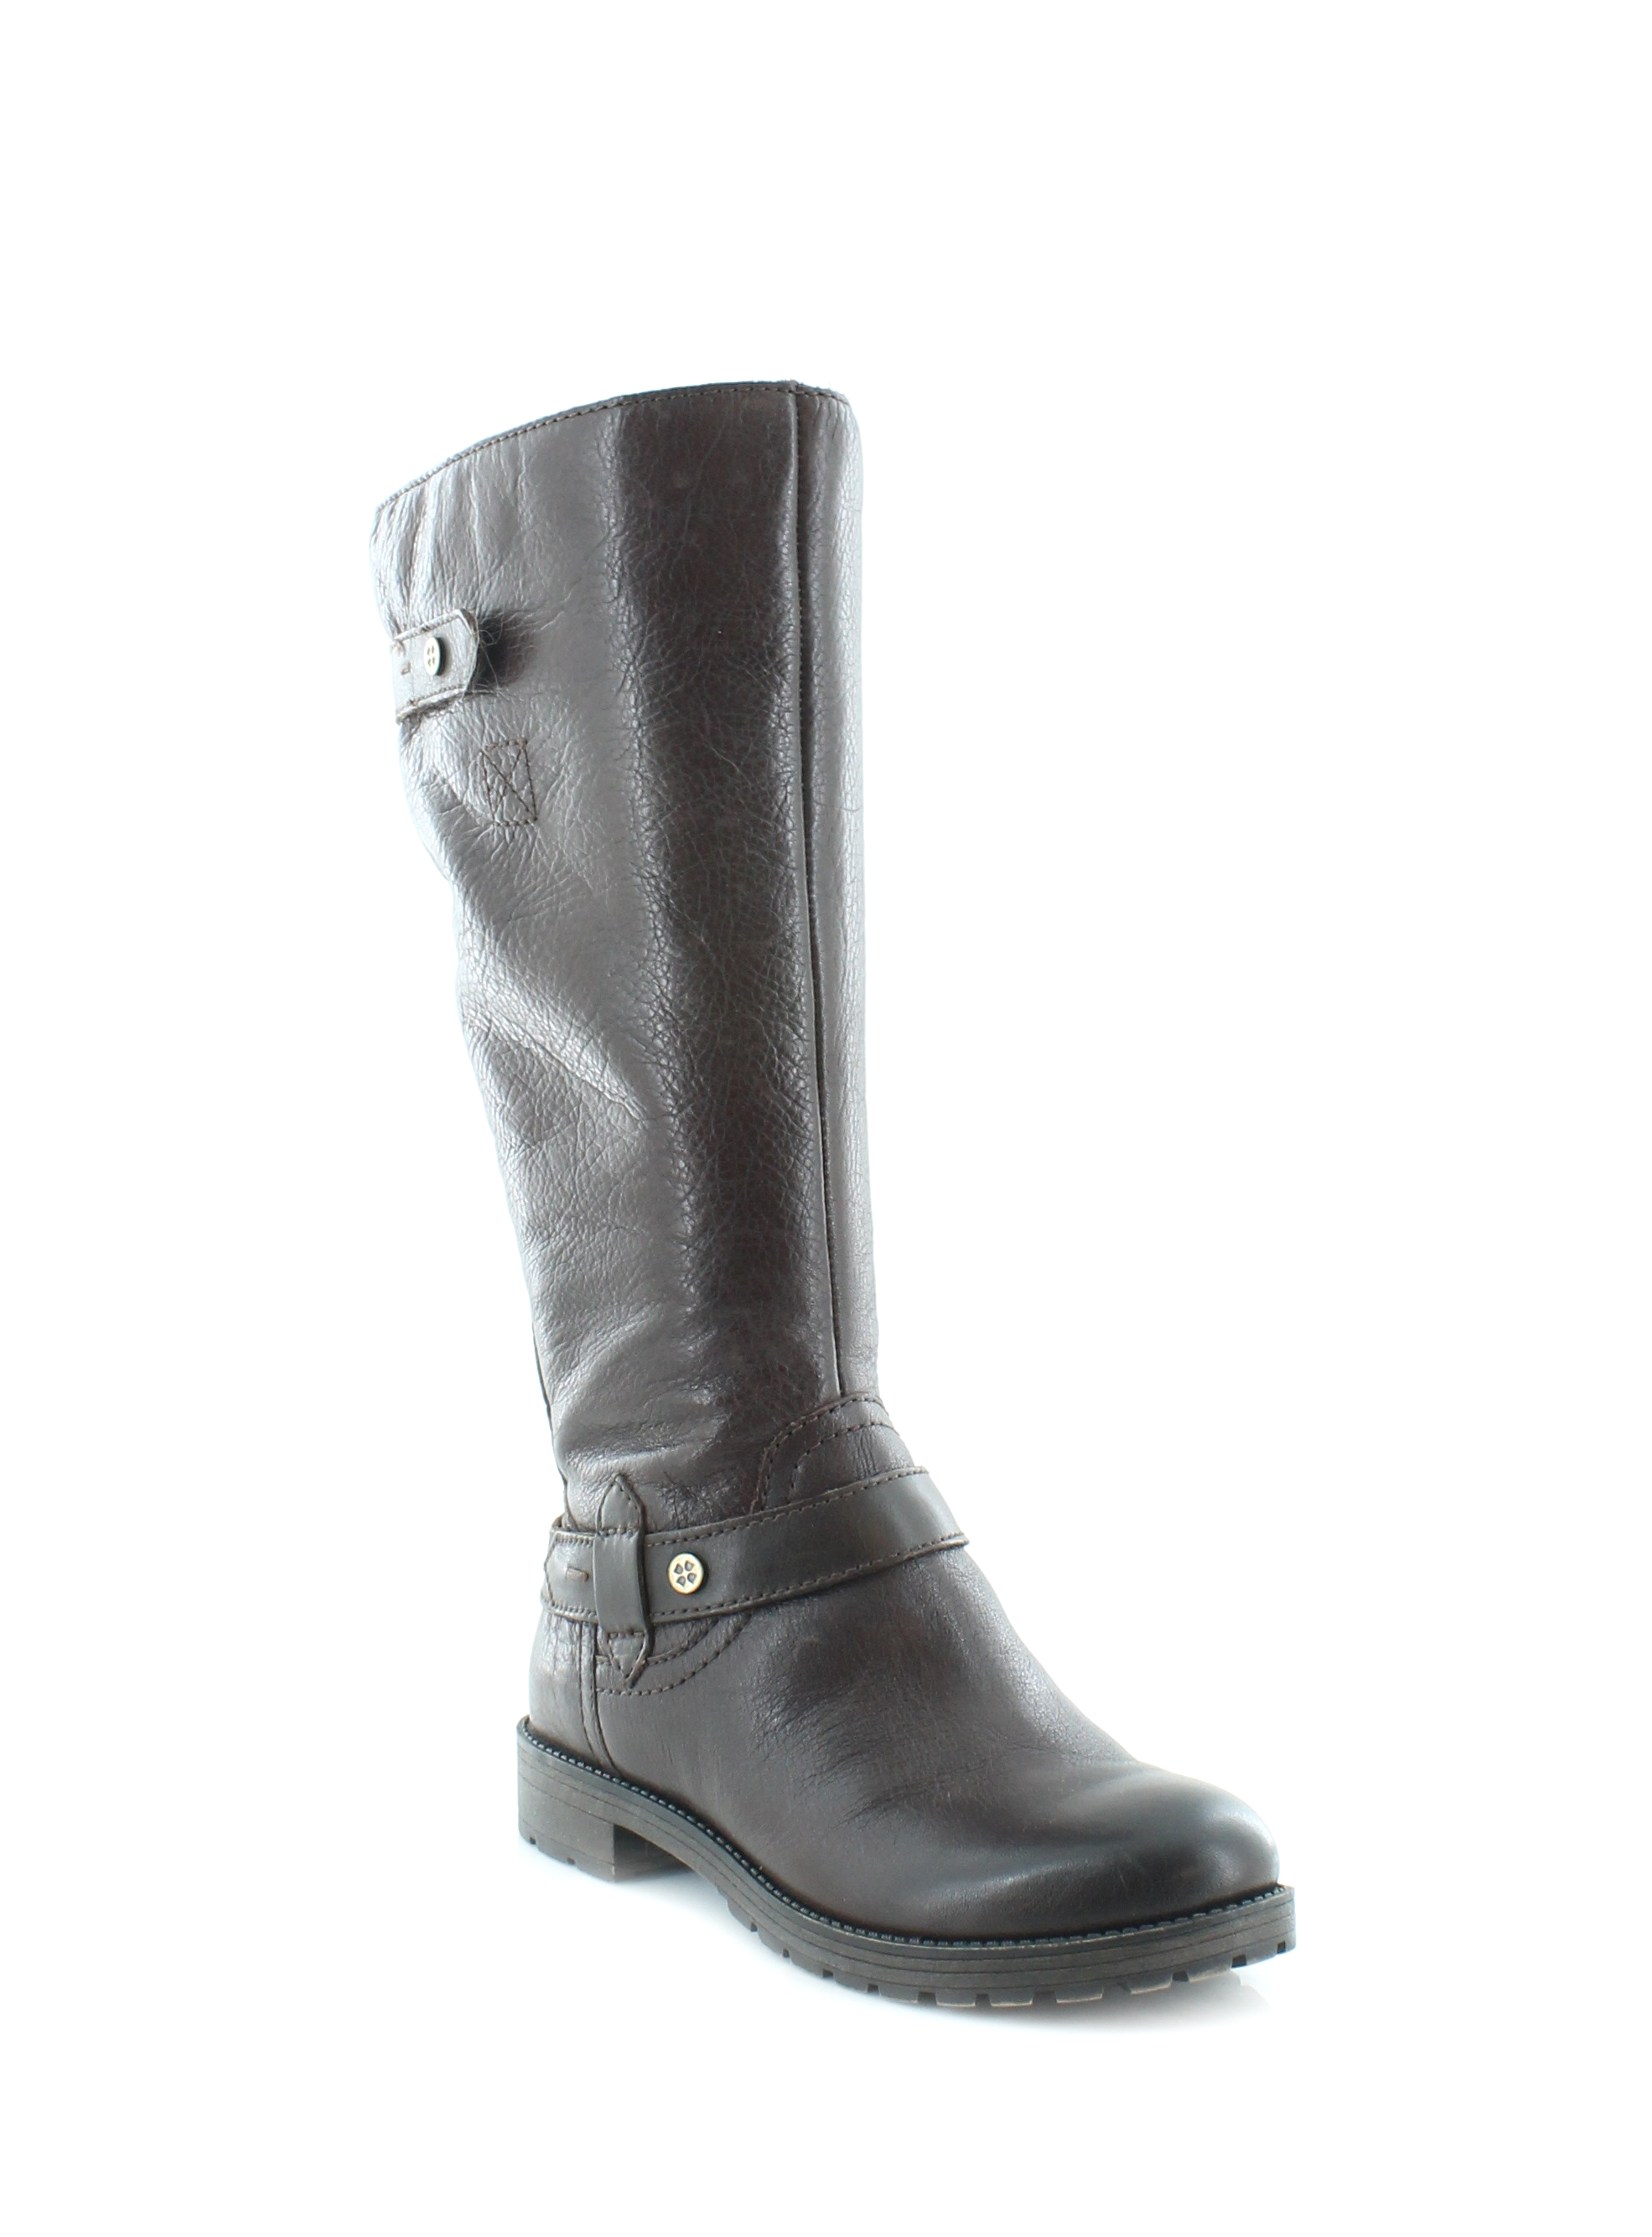 Naturalizer Tanita Women's Boots by Naturalizer